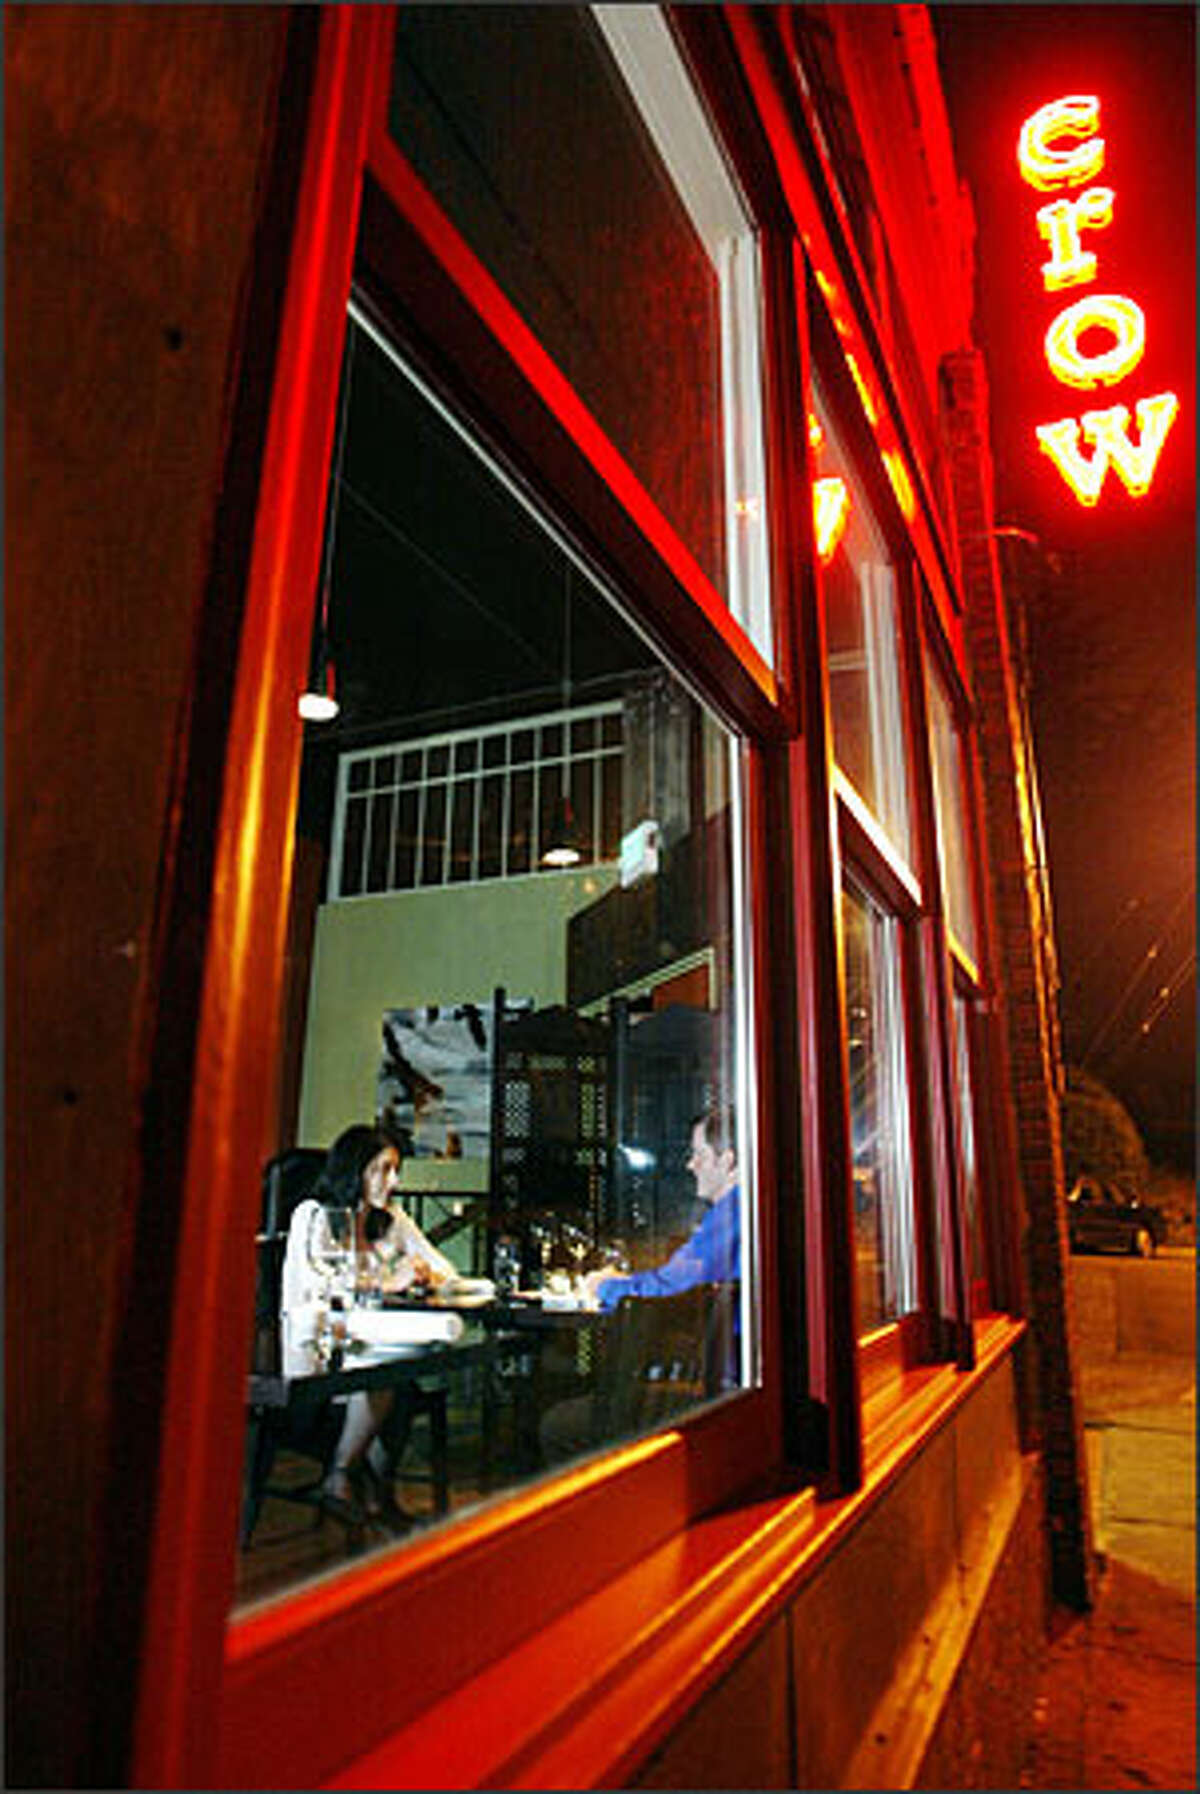 Customers enjoy dinner at Crow Restaurant & Bar on Lower Queen Anne. The converted warehouse space retains the loose, open feel of its past life.